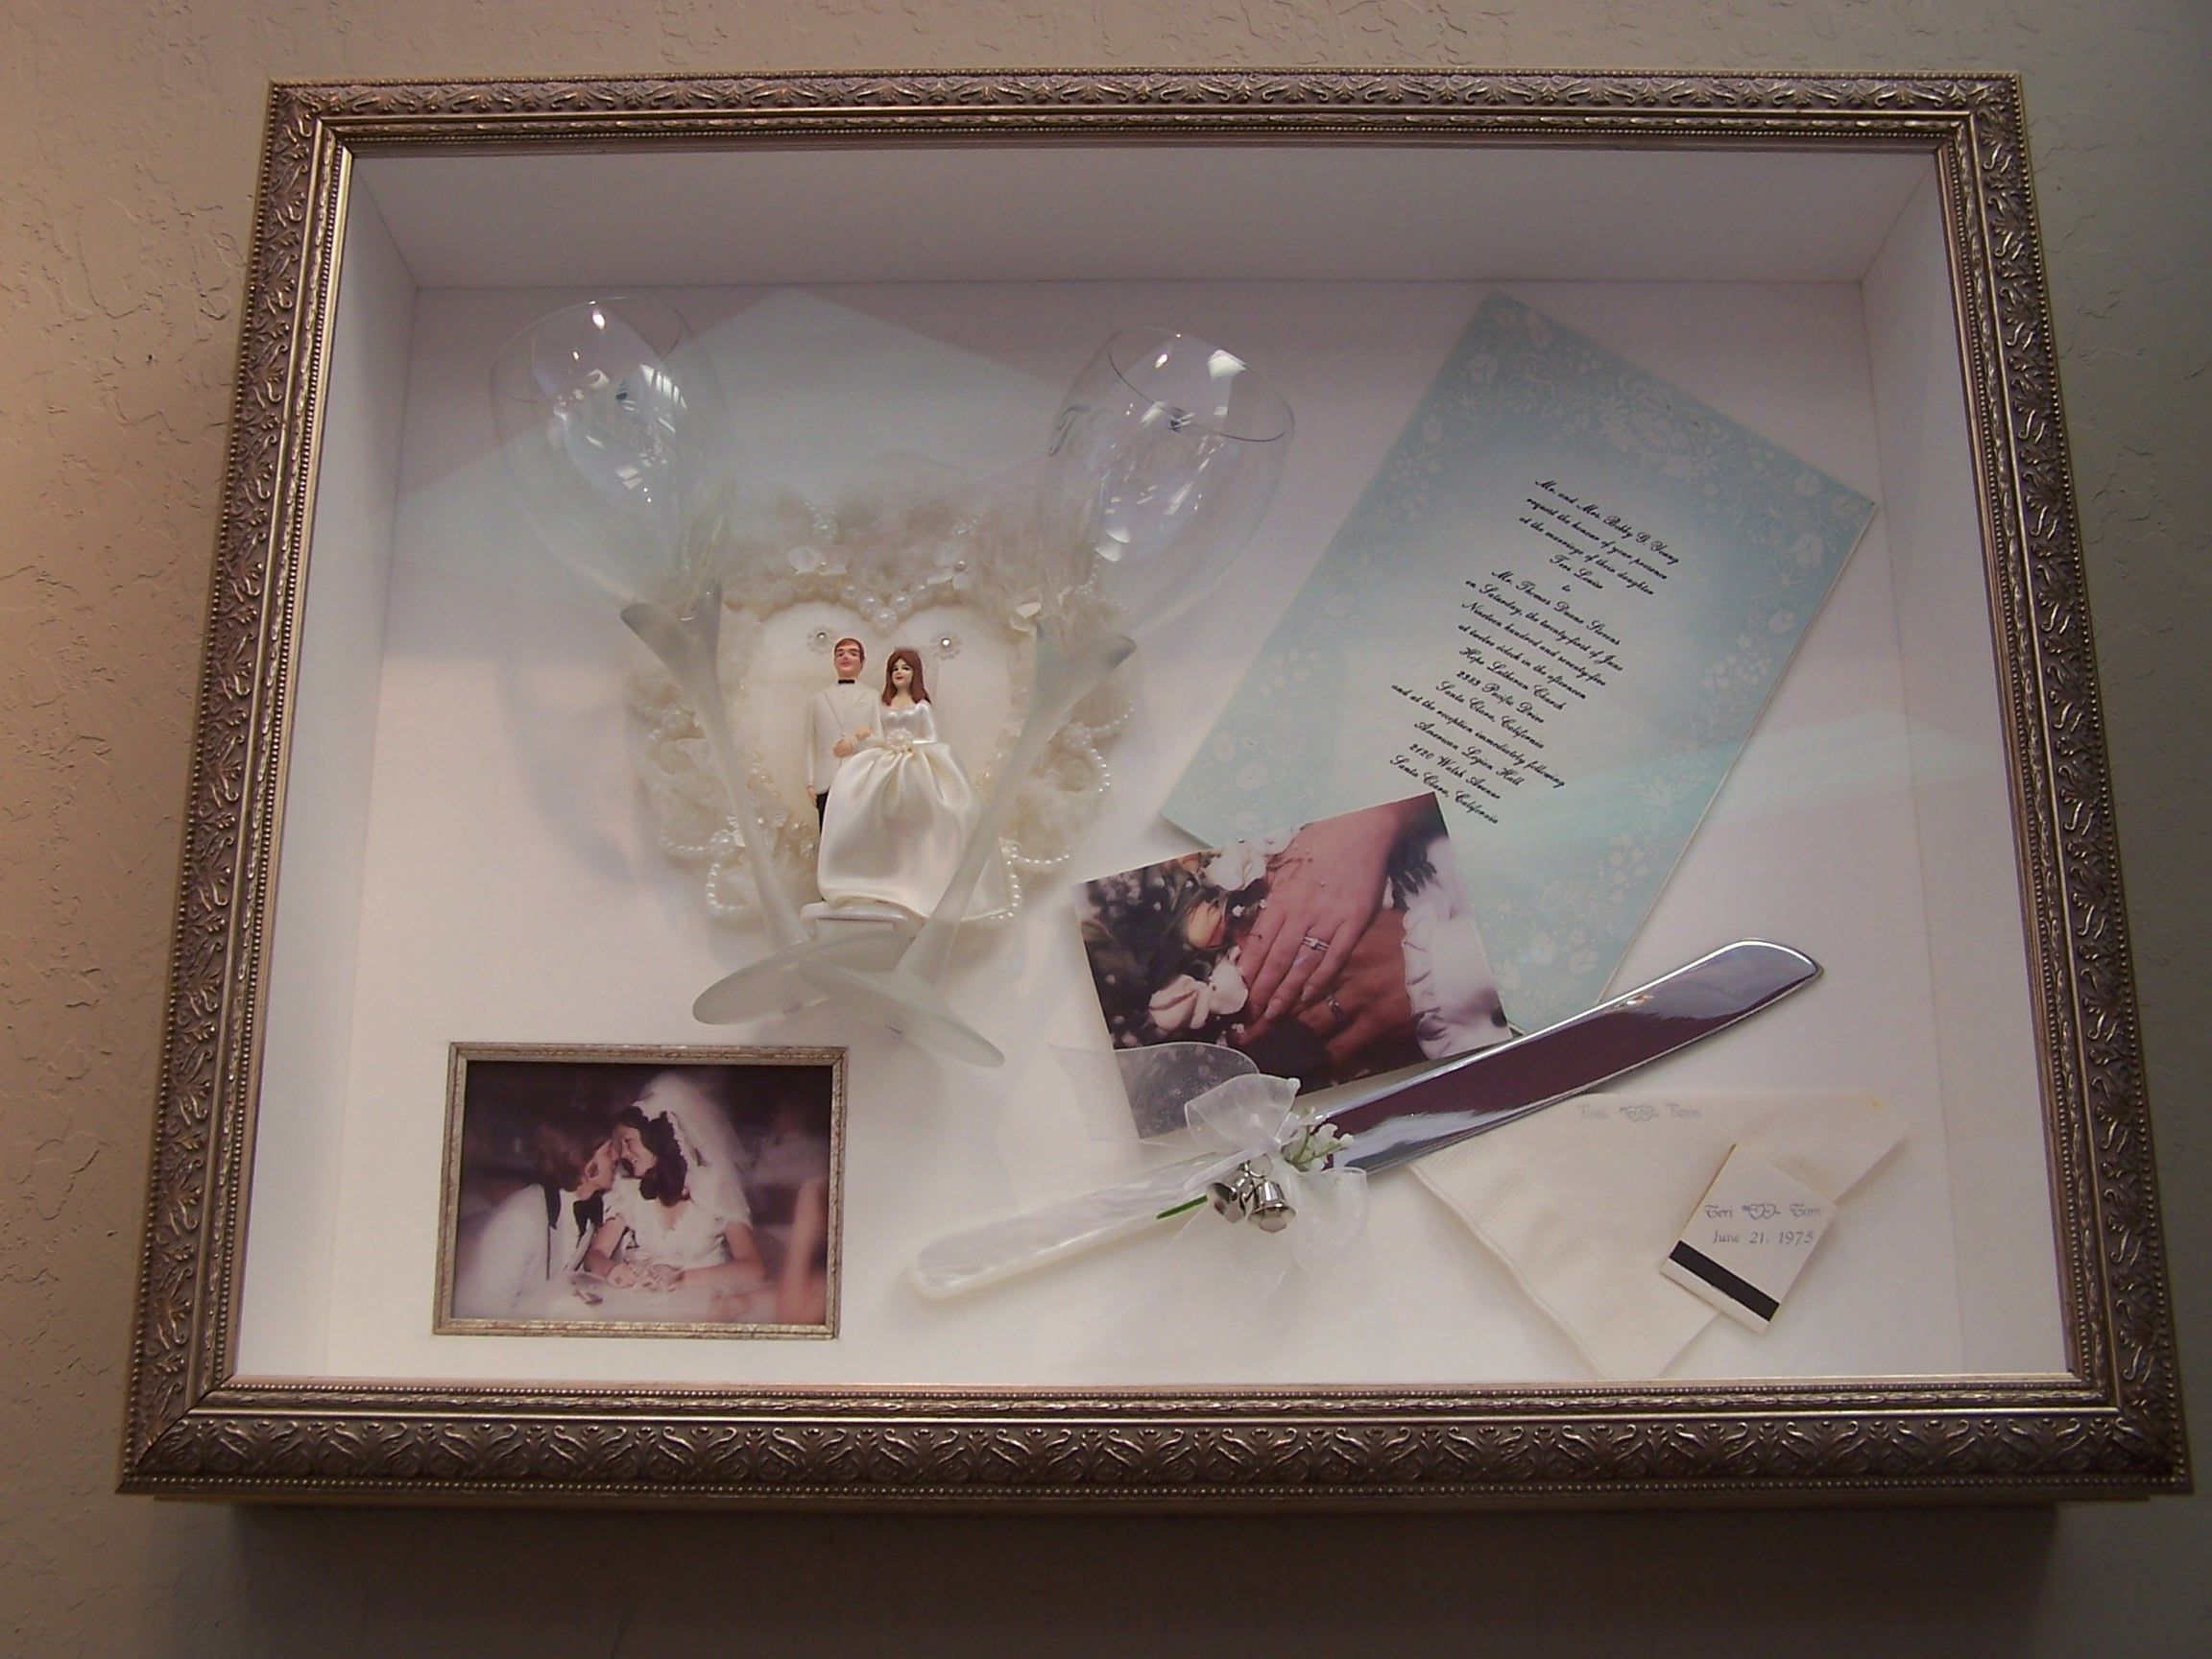 Wedding Shadow Box Was A Gift From My Framer Husband Tom On Our 30th Anniversary